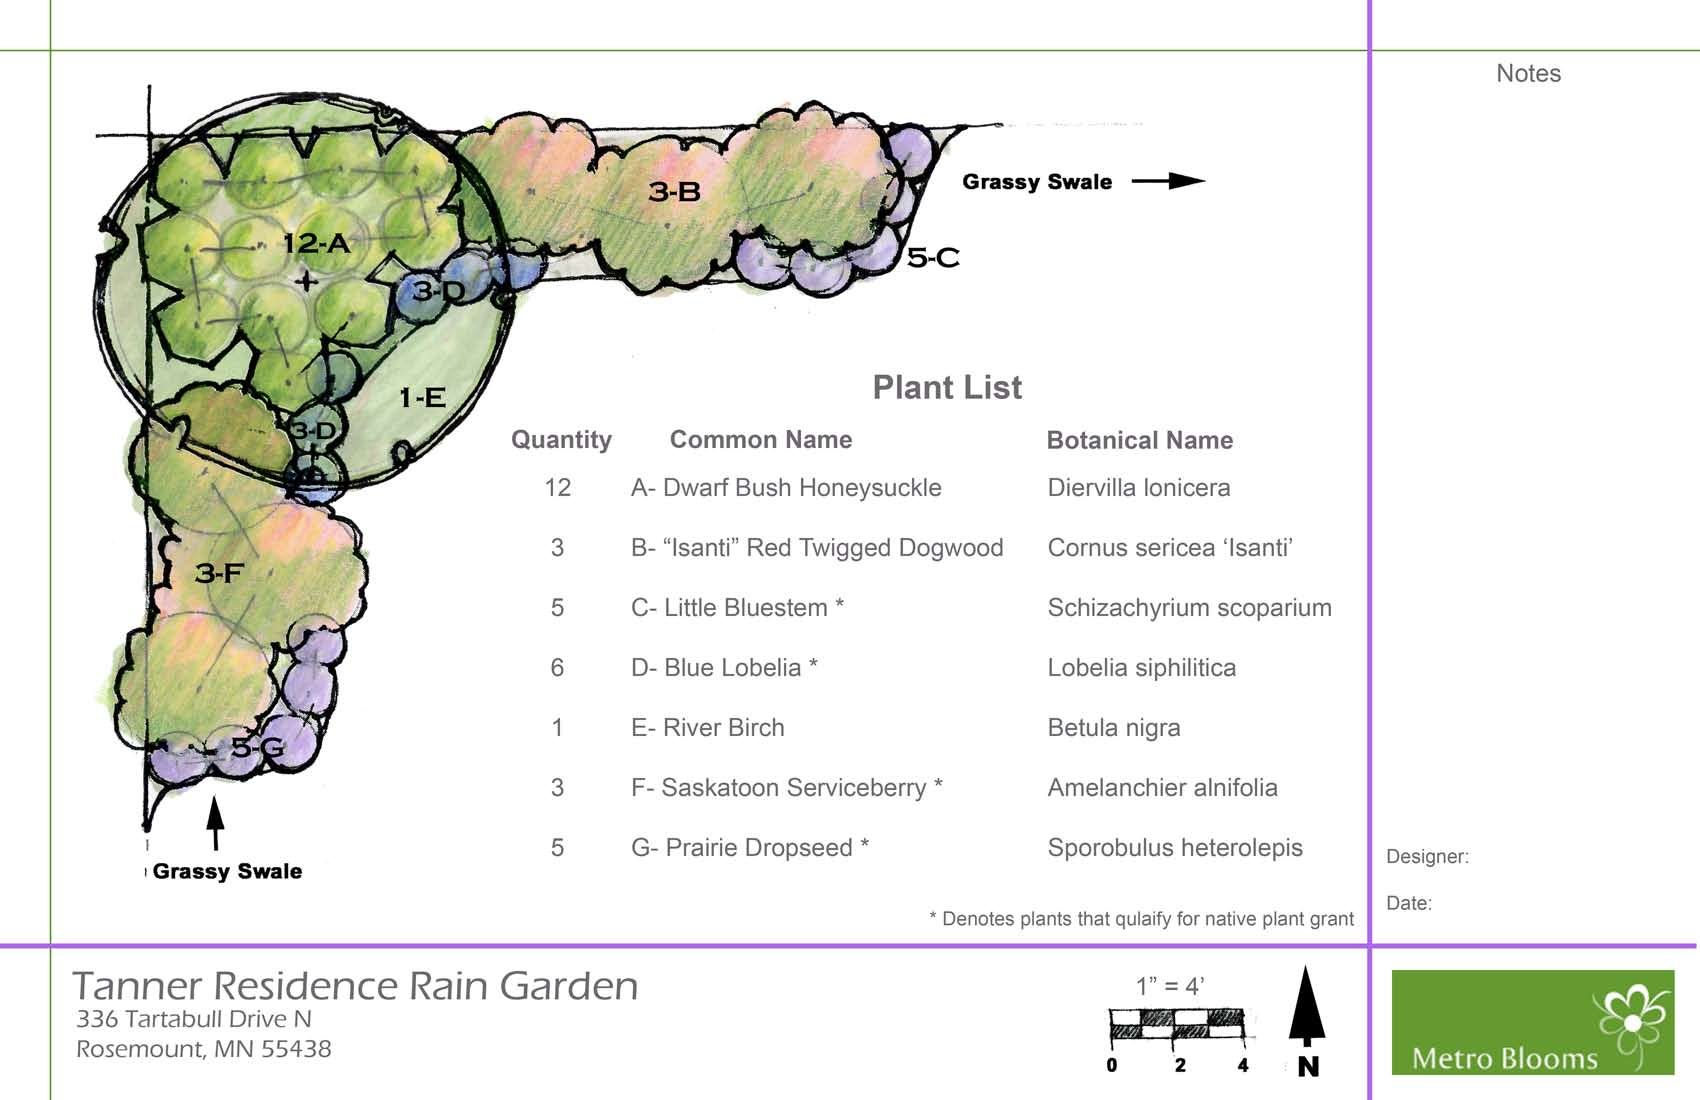 Charmant RAIN GARDEN DESIGN PLAN; Following Your Onsite Consultation Metro Blooms  Landscape Design Assistant Will Create